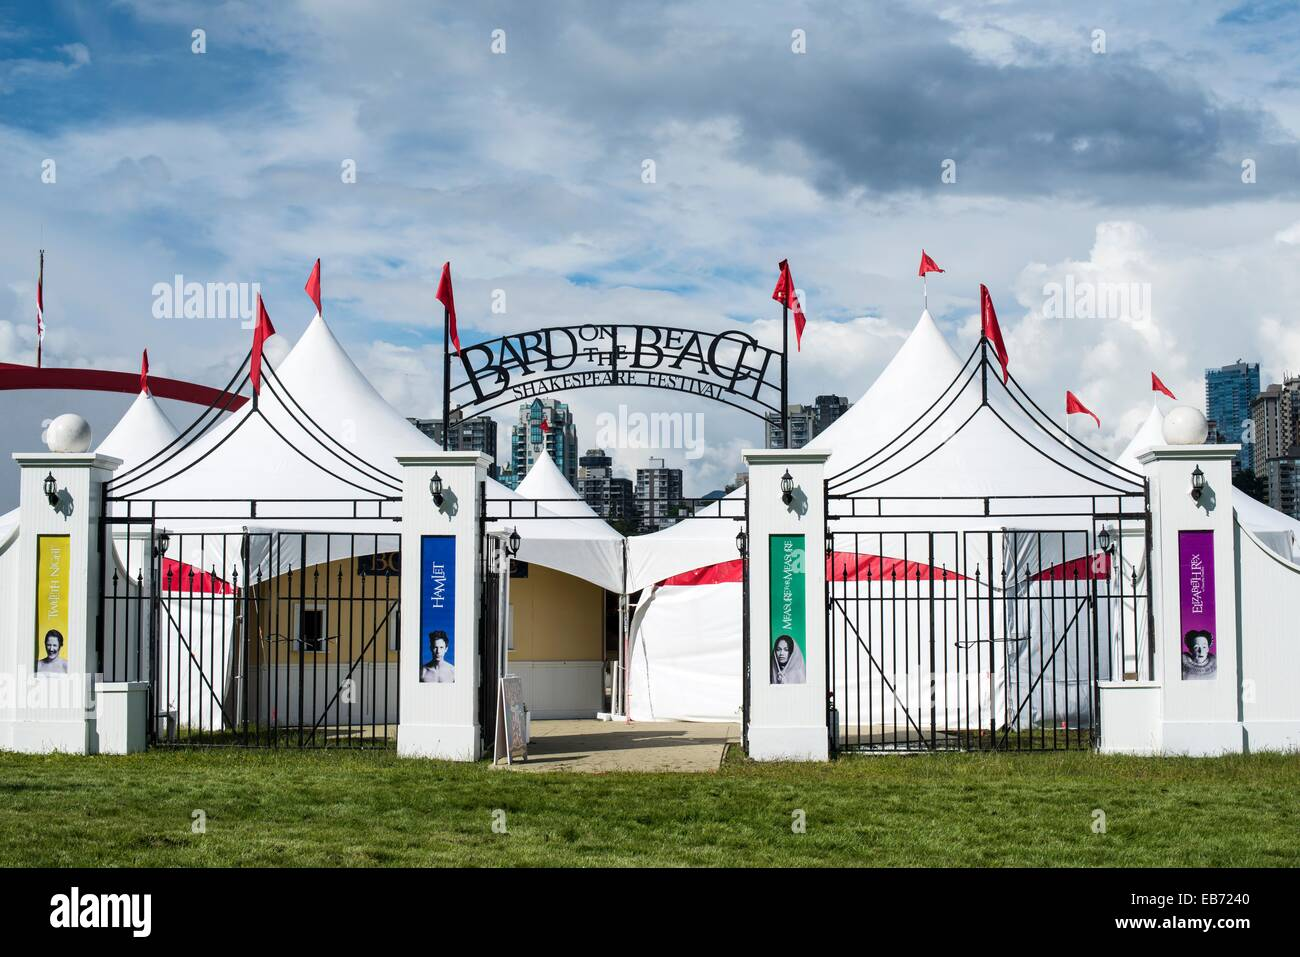 entrance to Bard on the Beach, the summer Shakespeare festival in Vanier Park, Vancouver, BC, Canada. - Stock Image